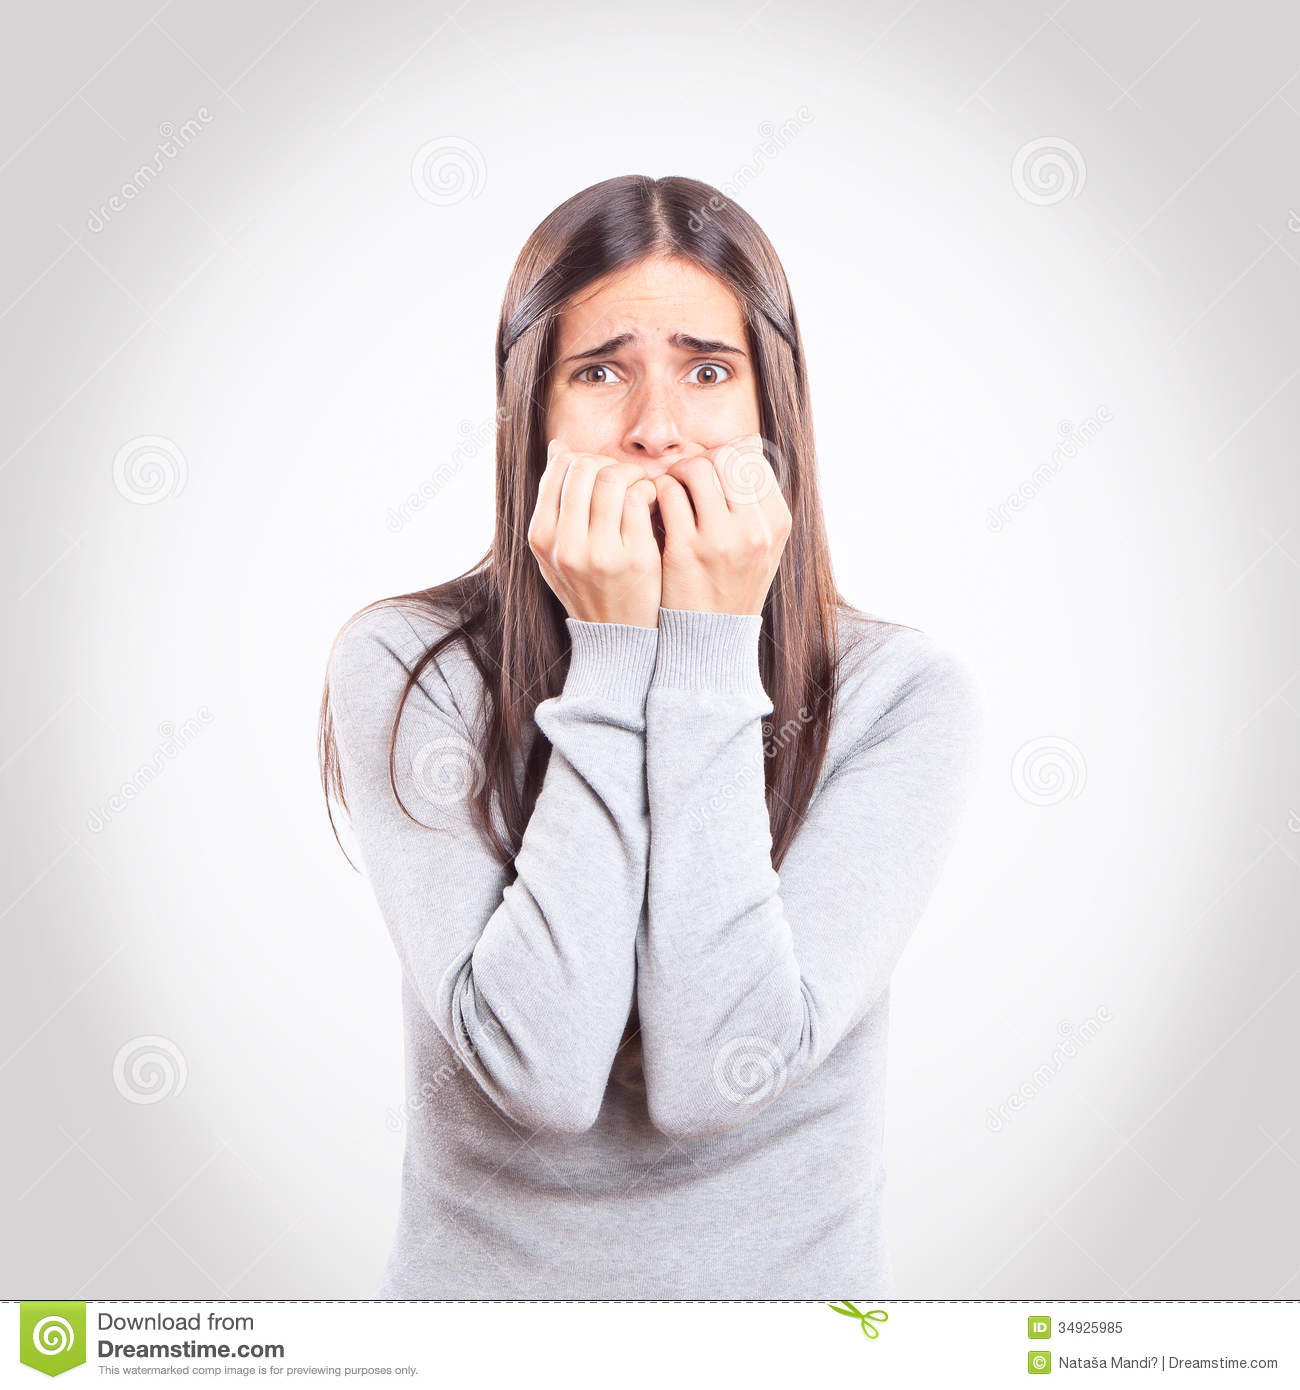 Young worried girl royalty free stock photo image 34925985